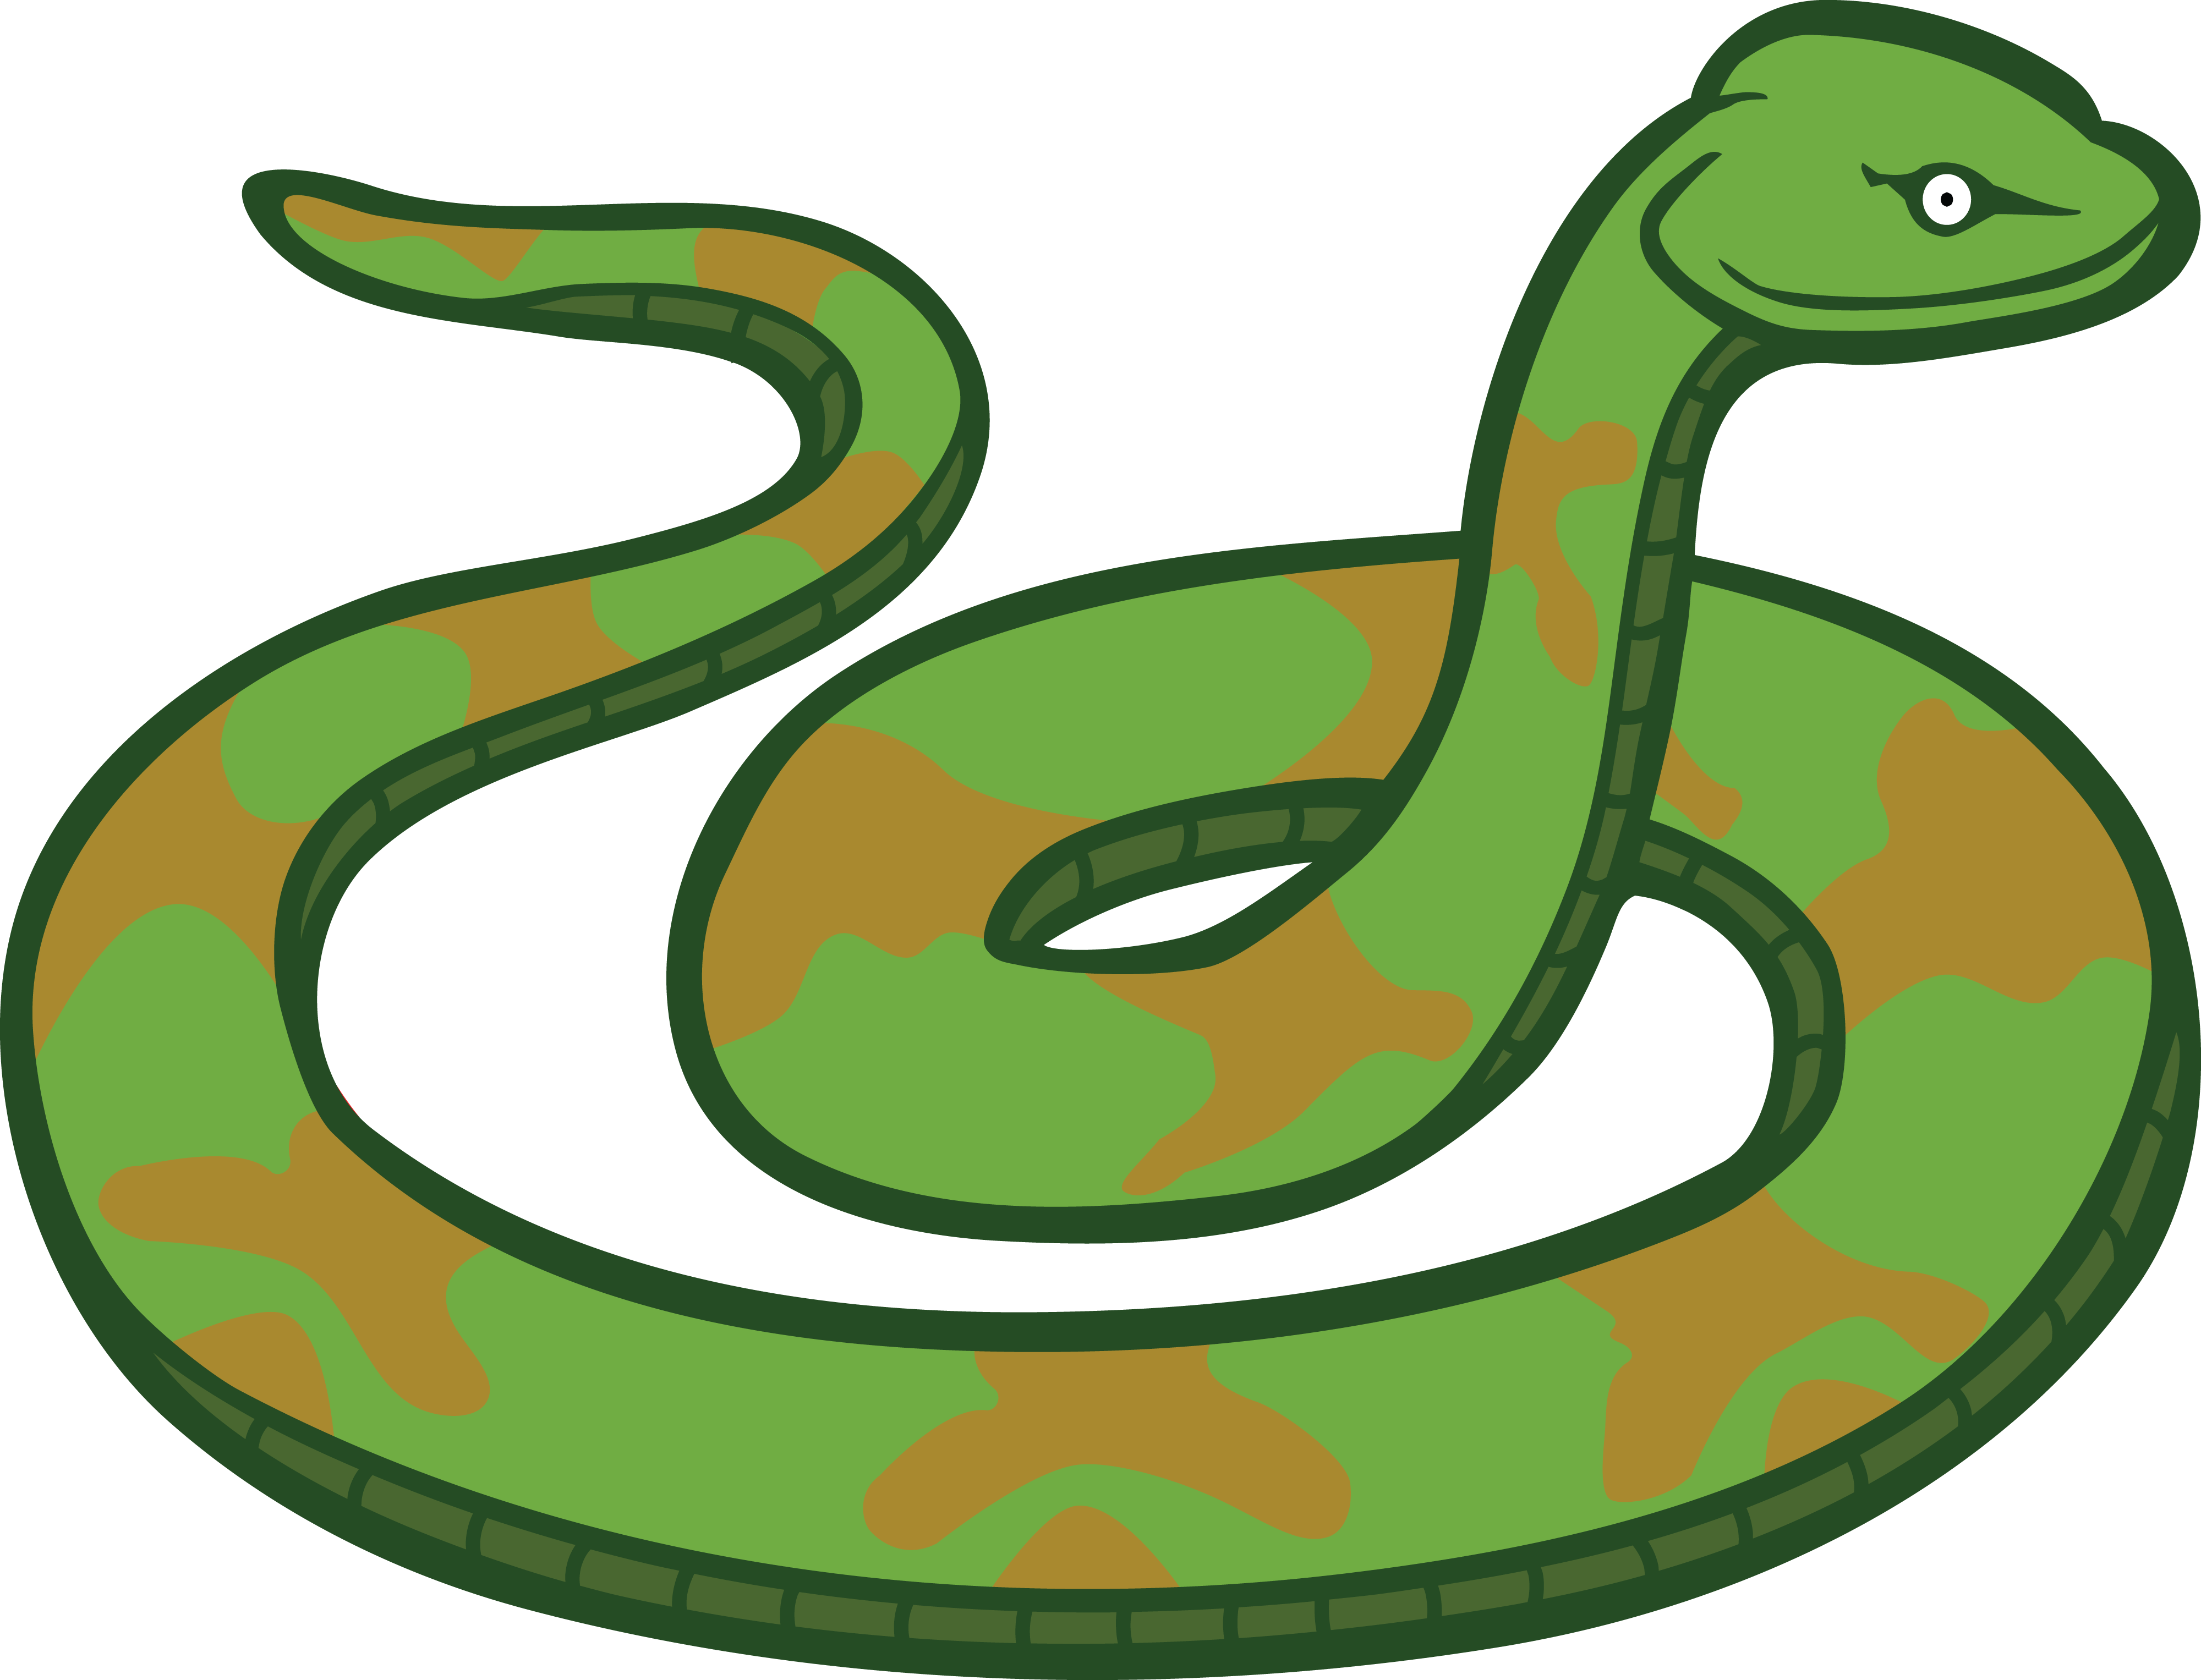 Pin By Chris Basten On Snakes Cobras Logos Reptile Snakes Free Clip Art Simple Background Hd